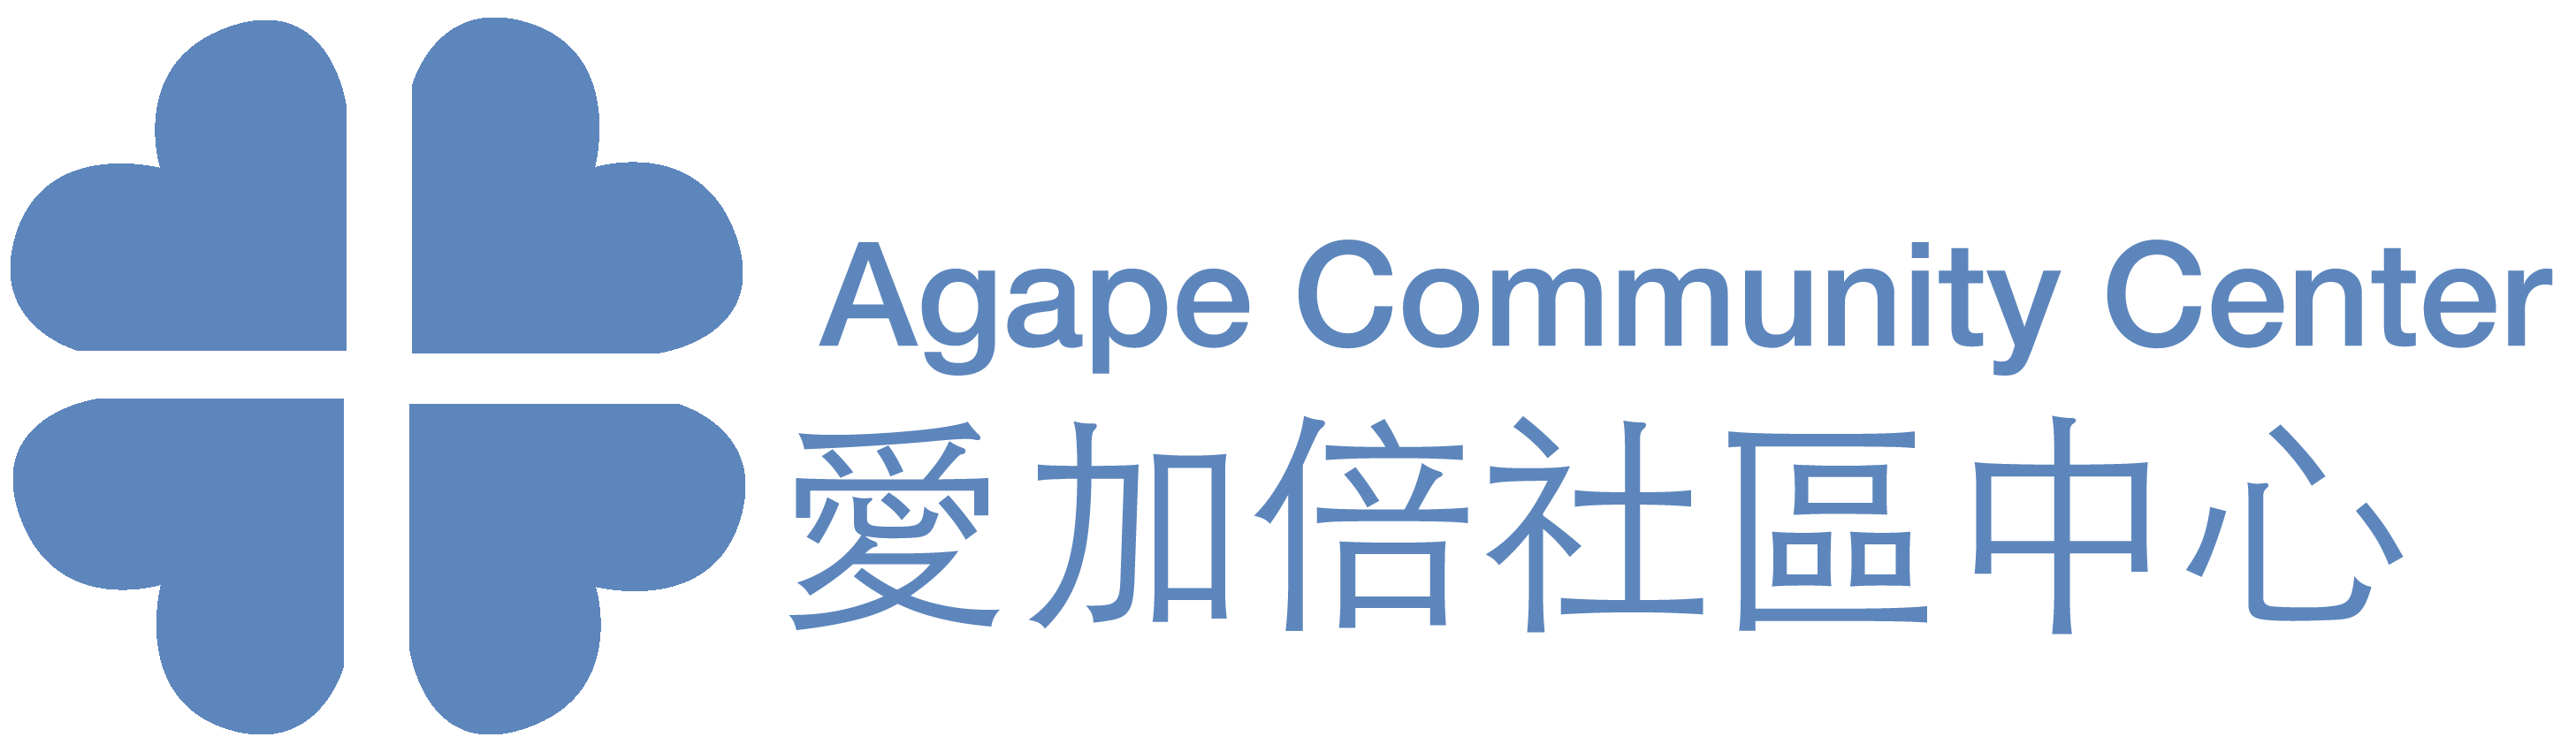 Agape Community Center